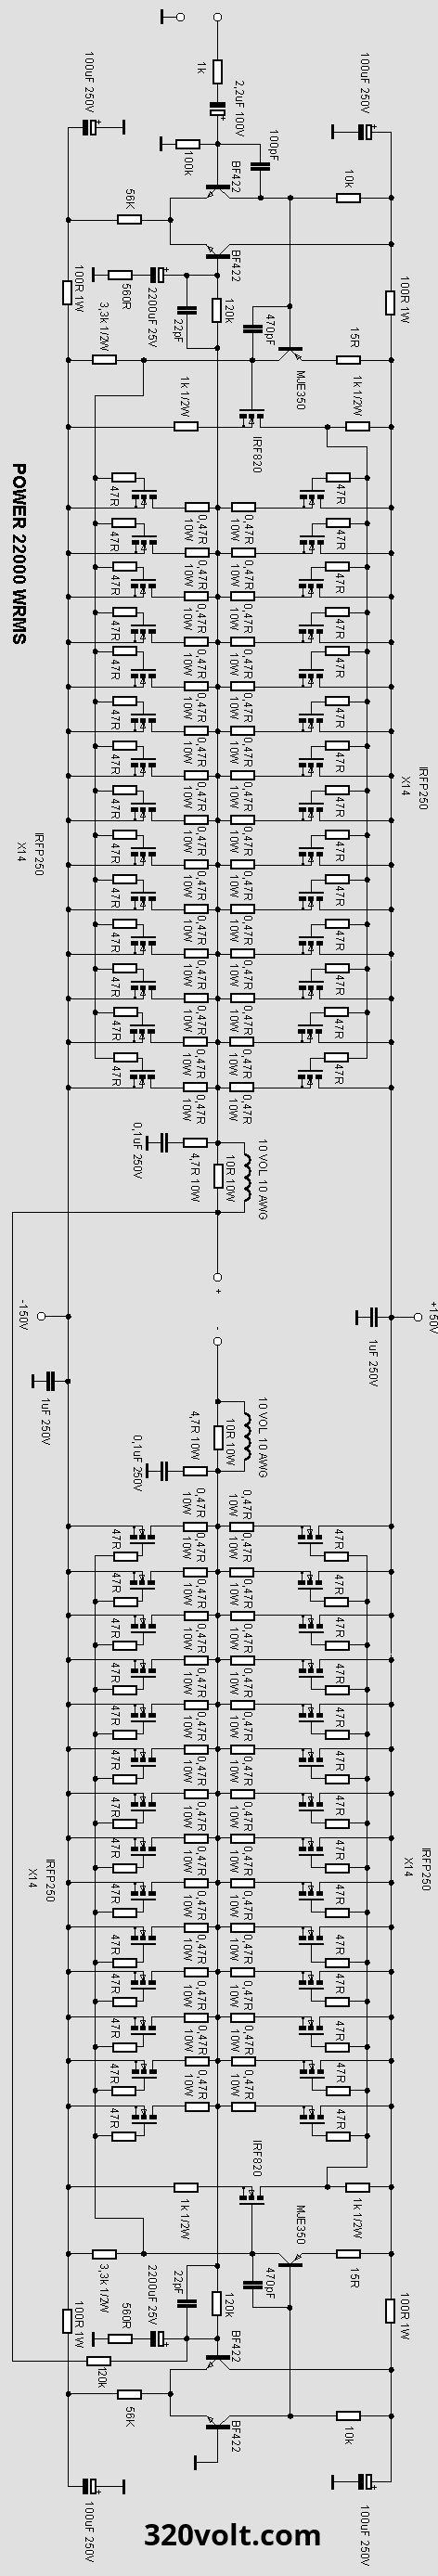 417 best Circuits images on Pinterest | Electronics projects ...